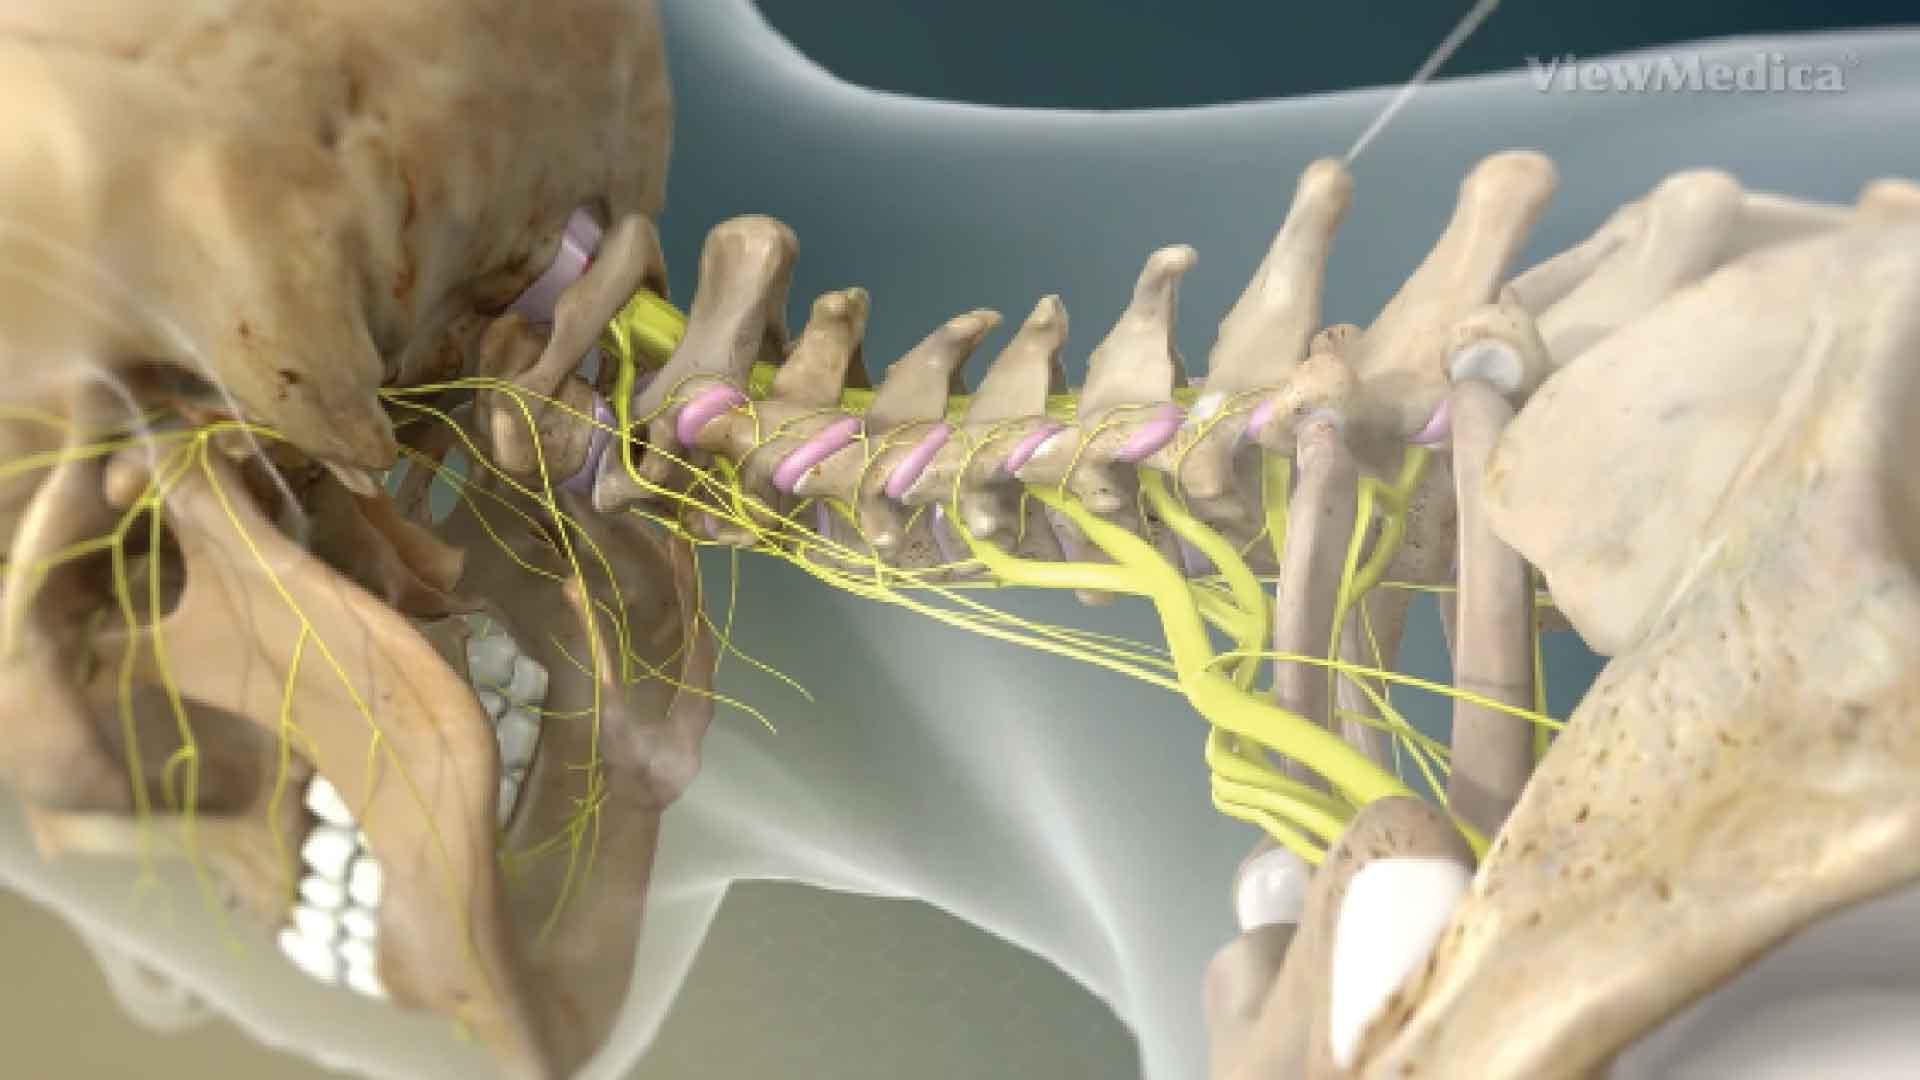 Facet joint cervical treatment